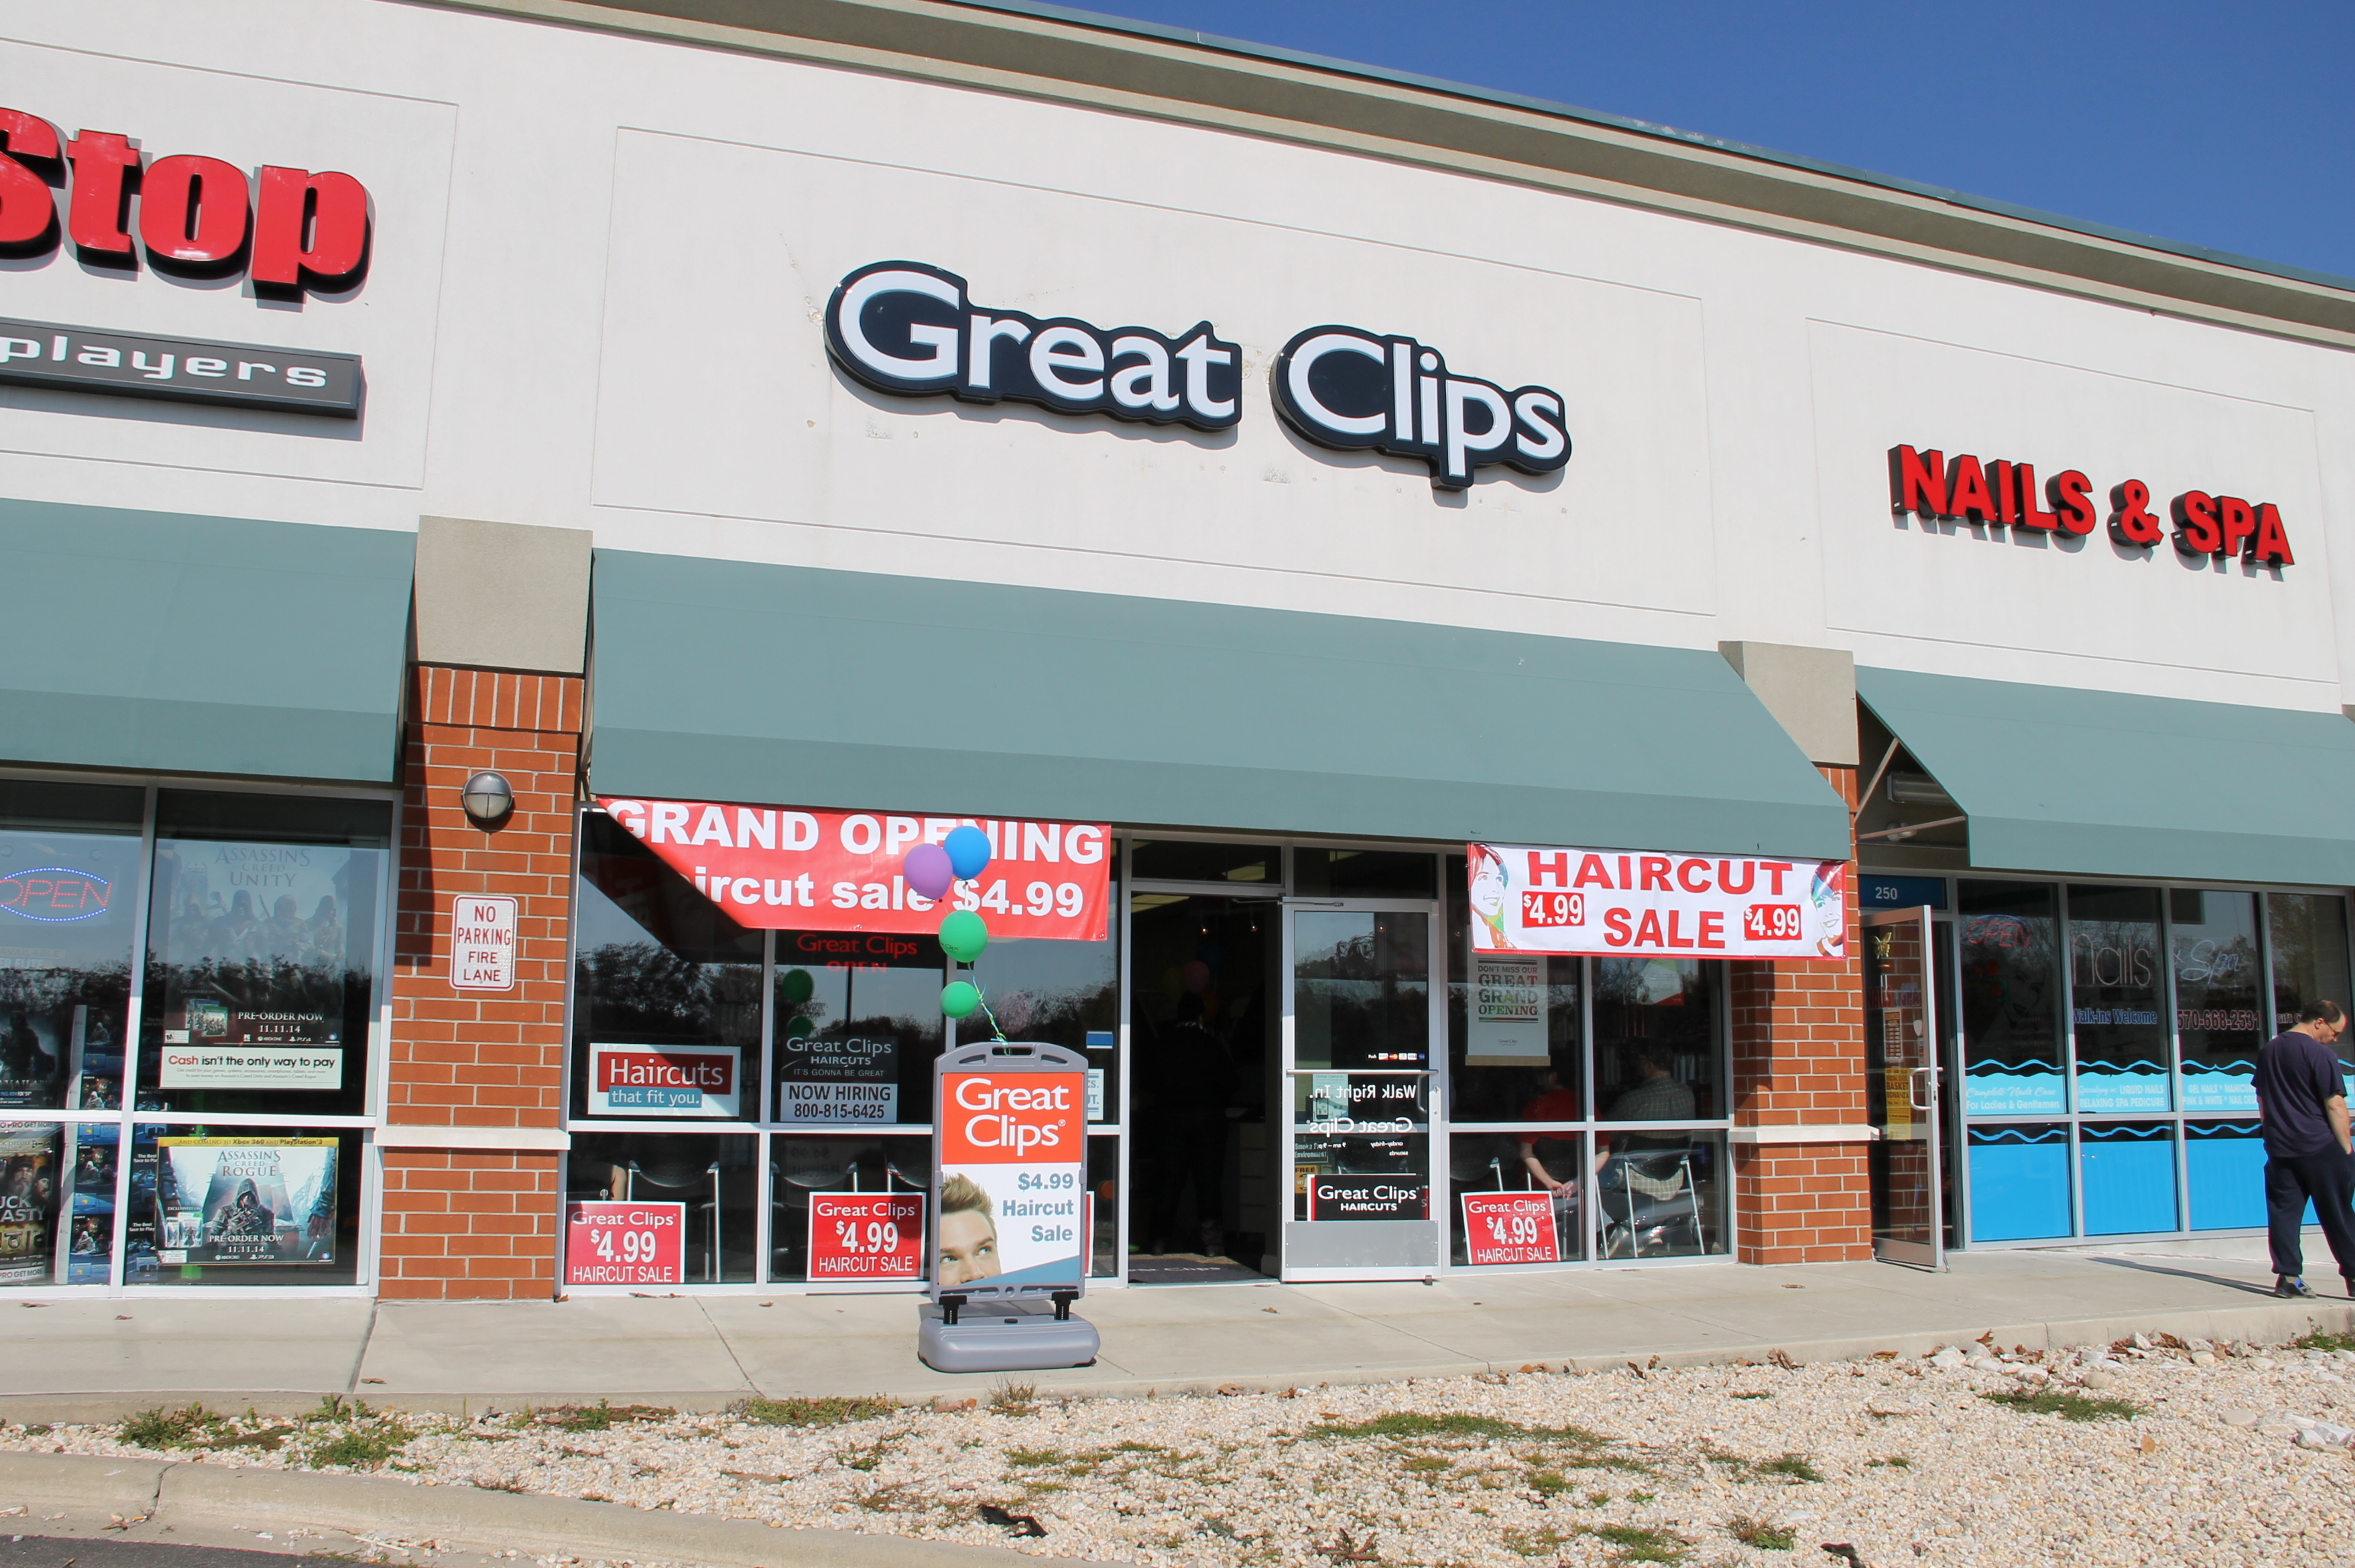 Great Clips hours and Great Clips locations along with phone number and map with driving directions/5().